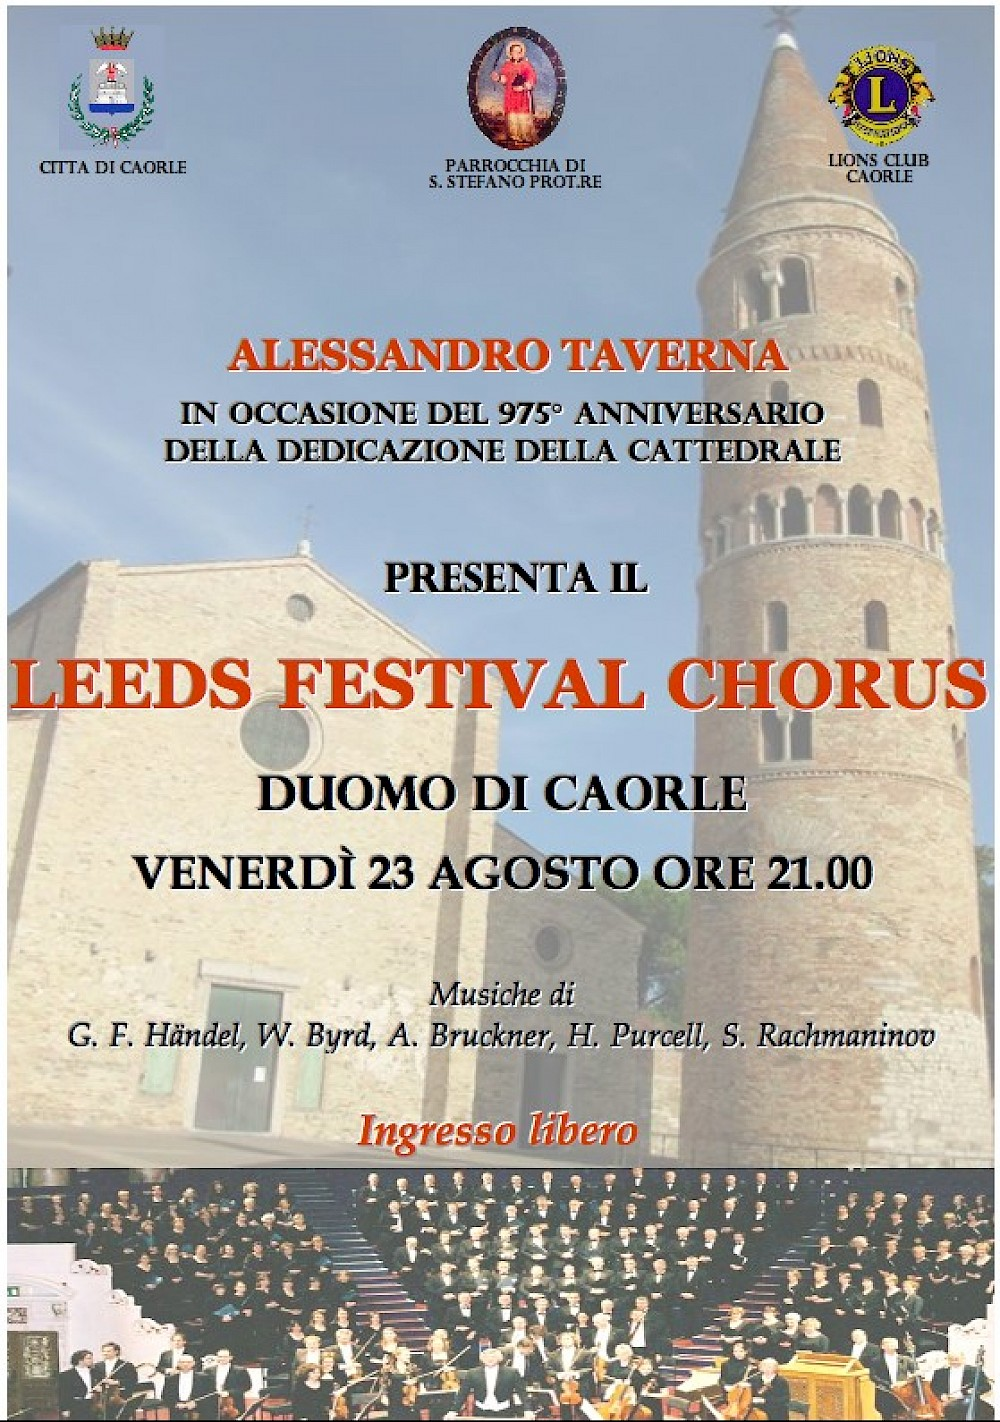 A poster for the concert at Caorle